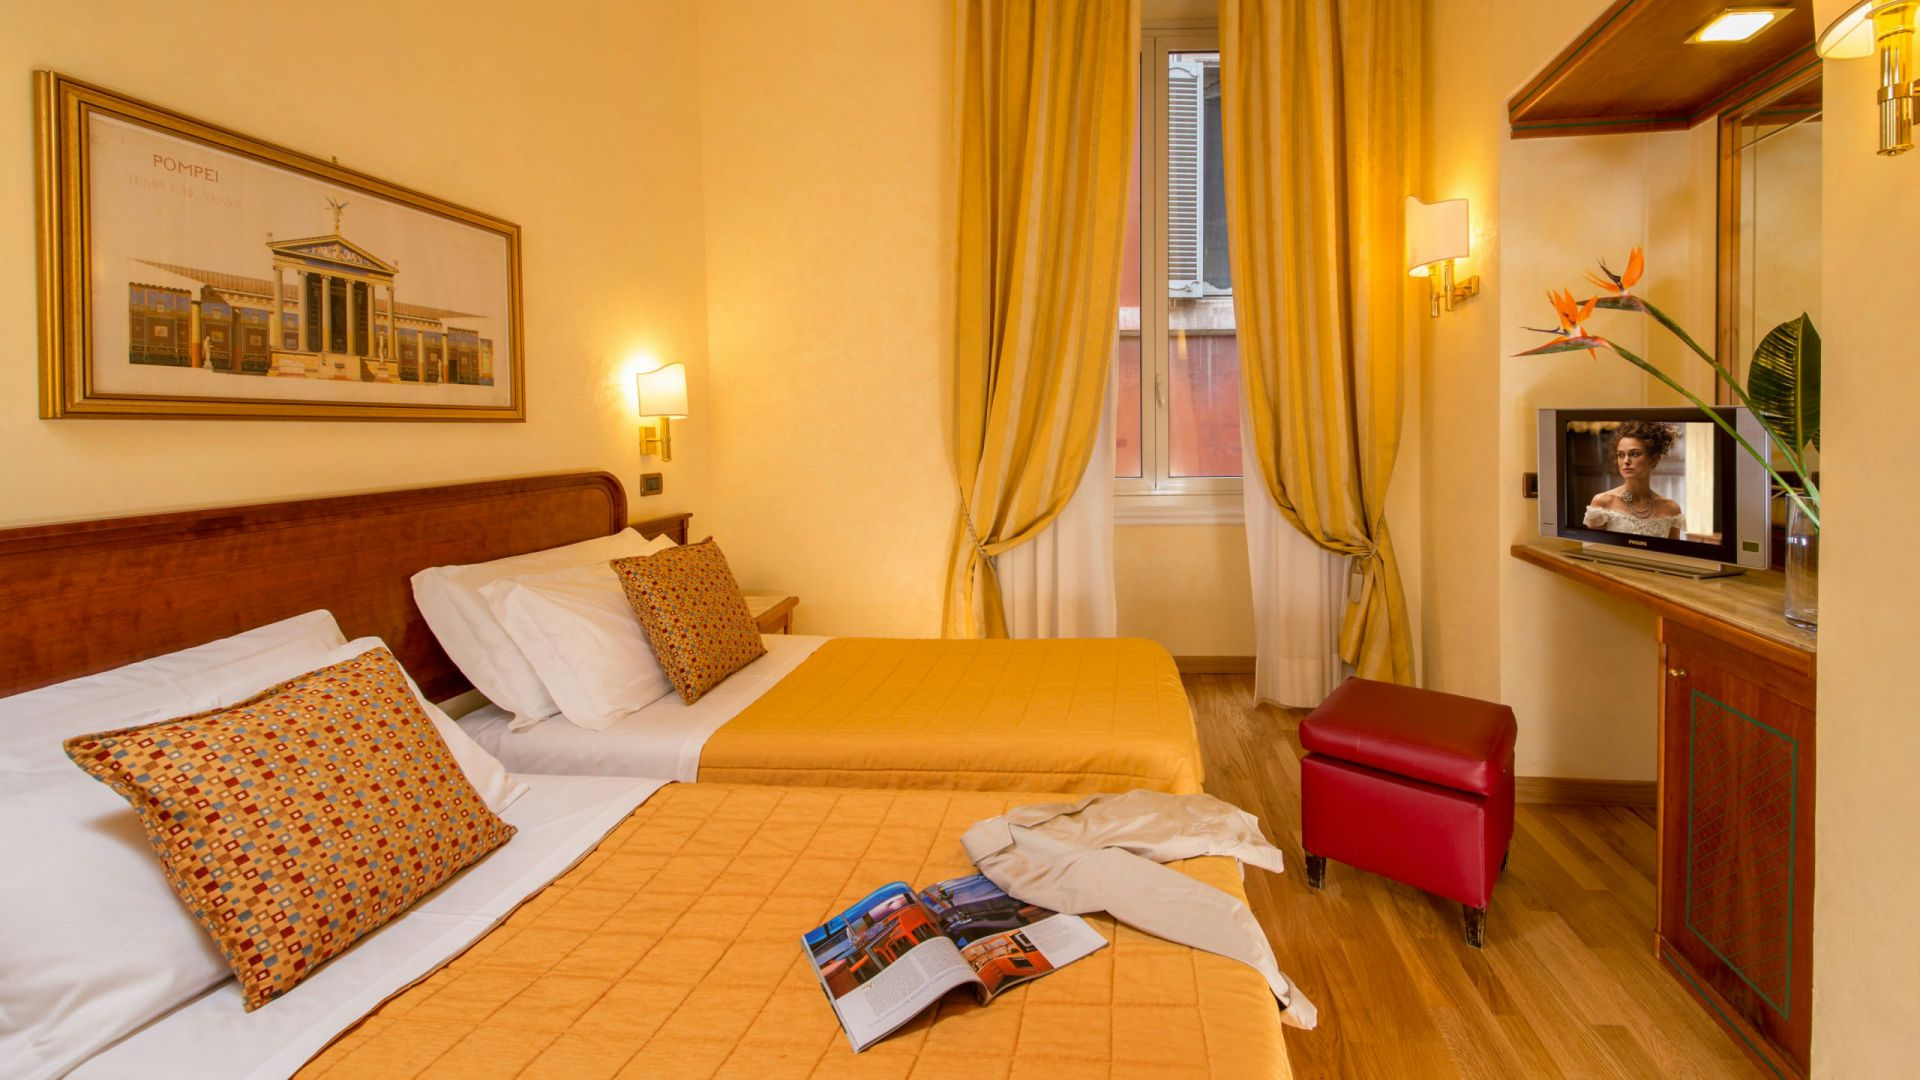 fotogallerie-hotel-regno-rom-zimmer-25